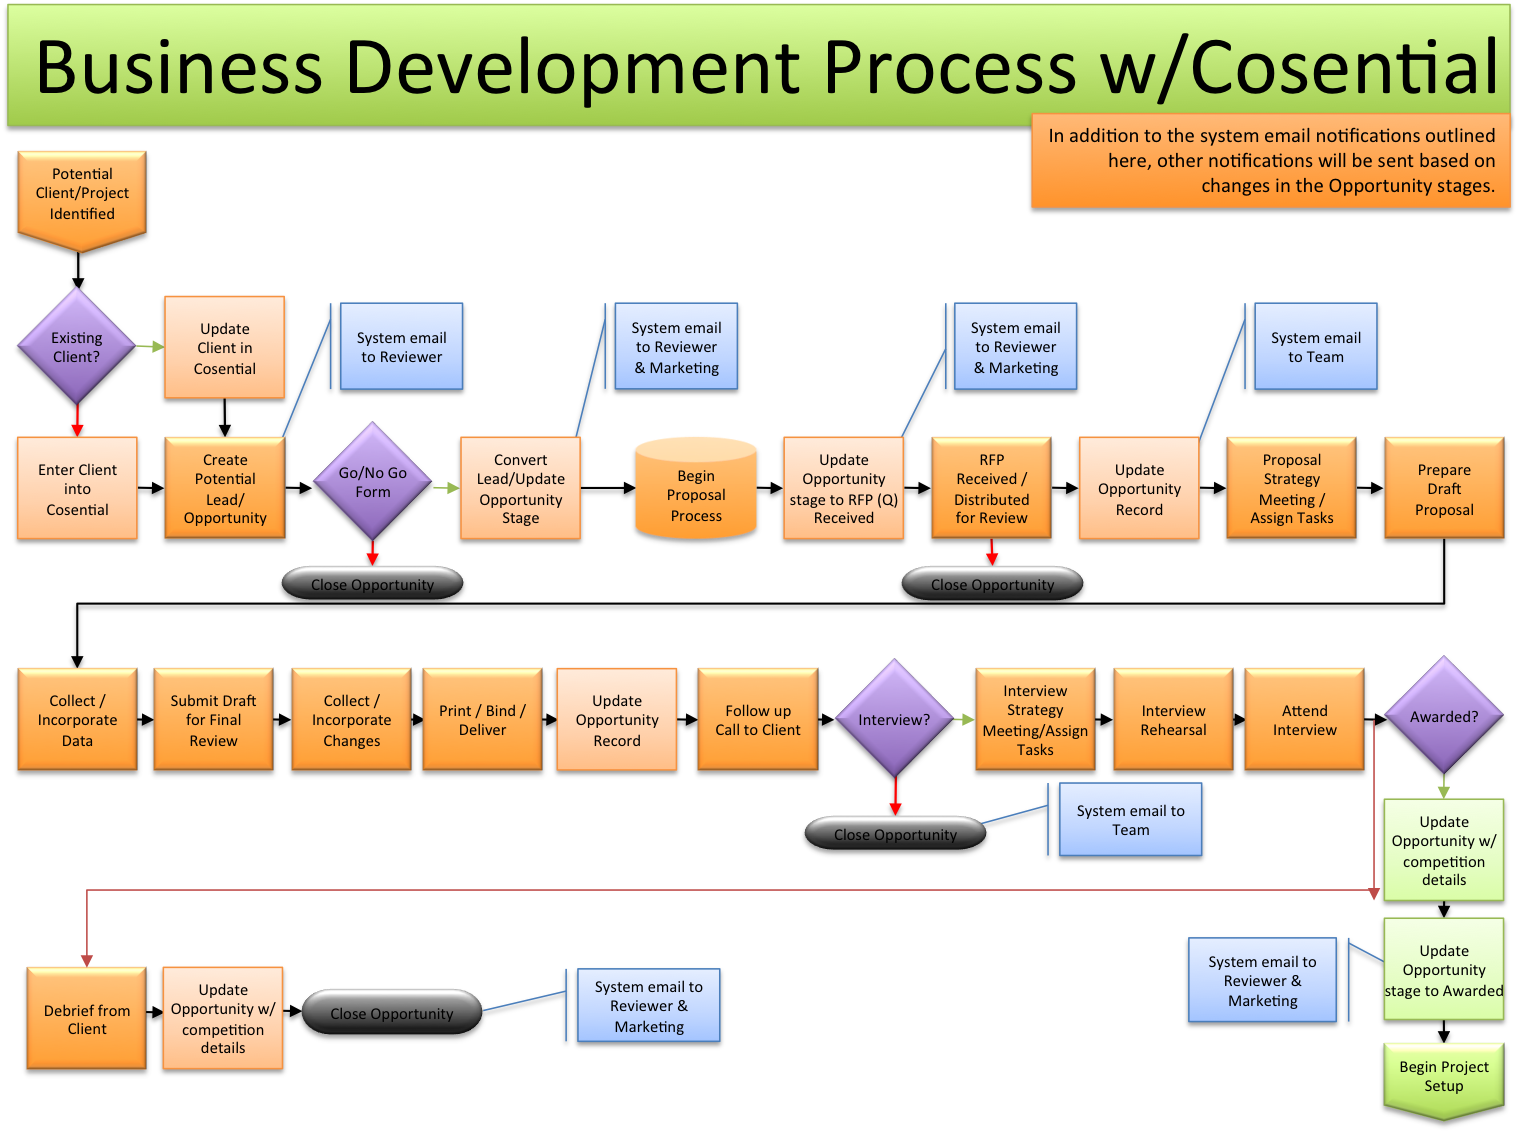 001_BDProcess_wCosential_JFWOW2013